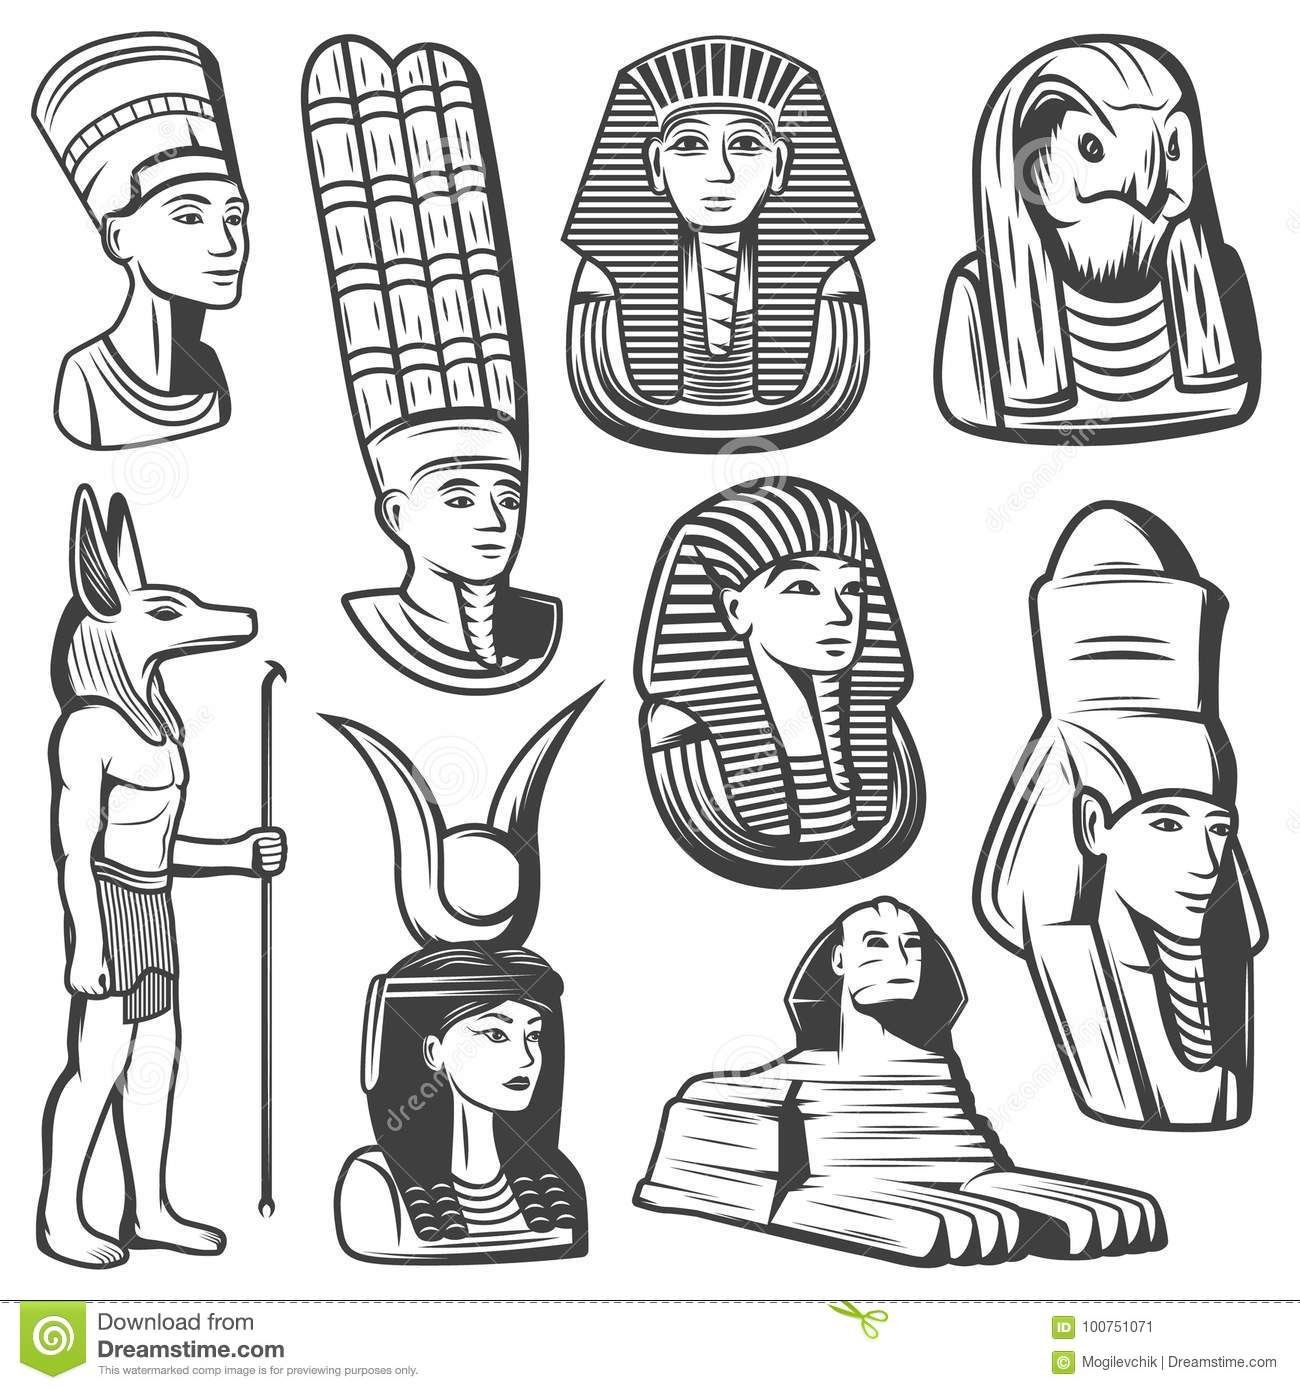 e5182c1b8 Vintage monochrome ancient Egypt people set with pharaoh mask sphinx  egyptian gods and goddesses isolated vector illustration